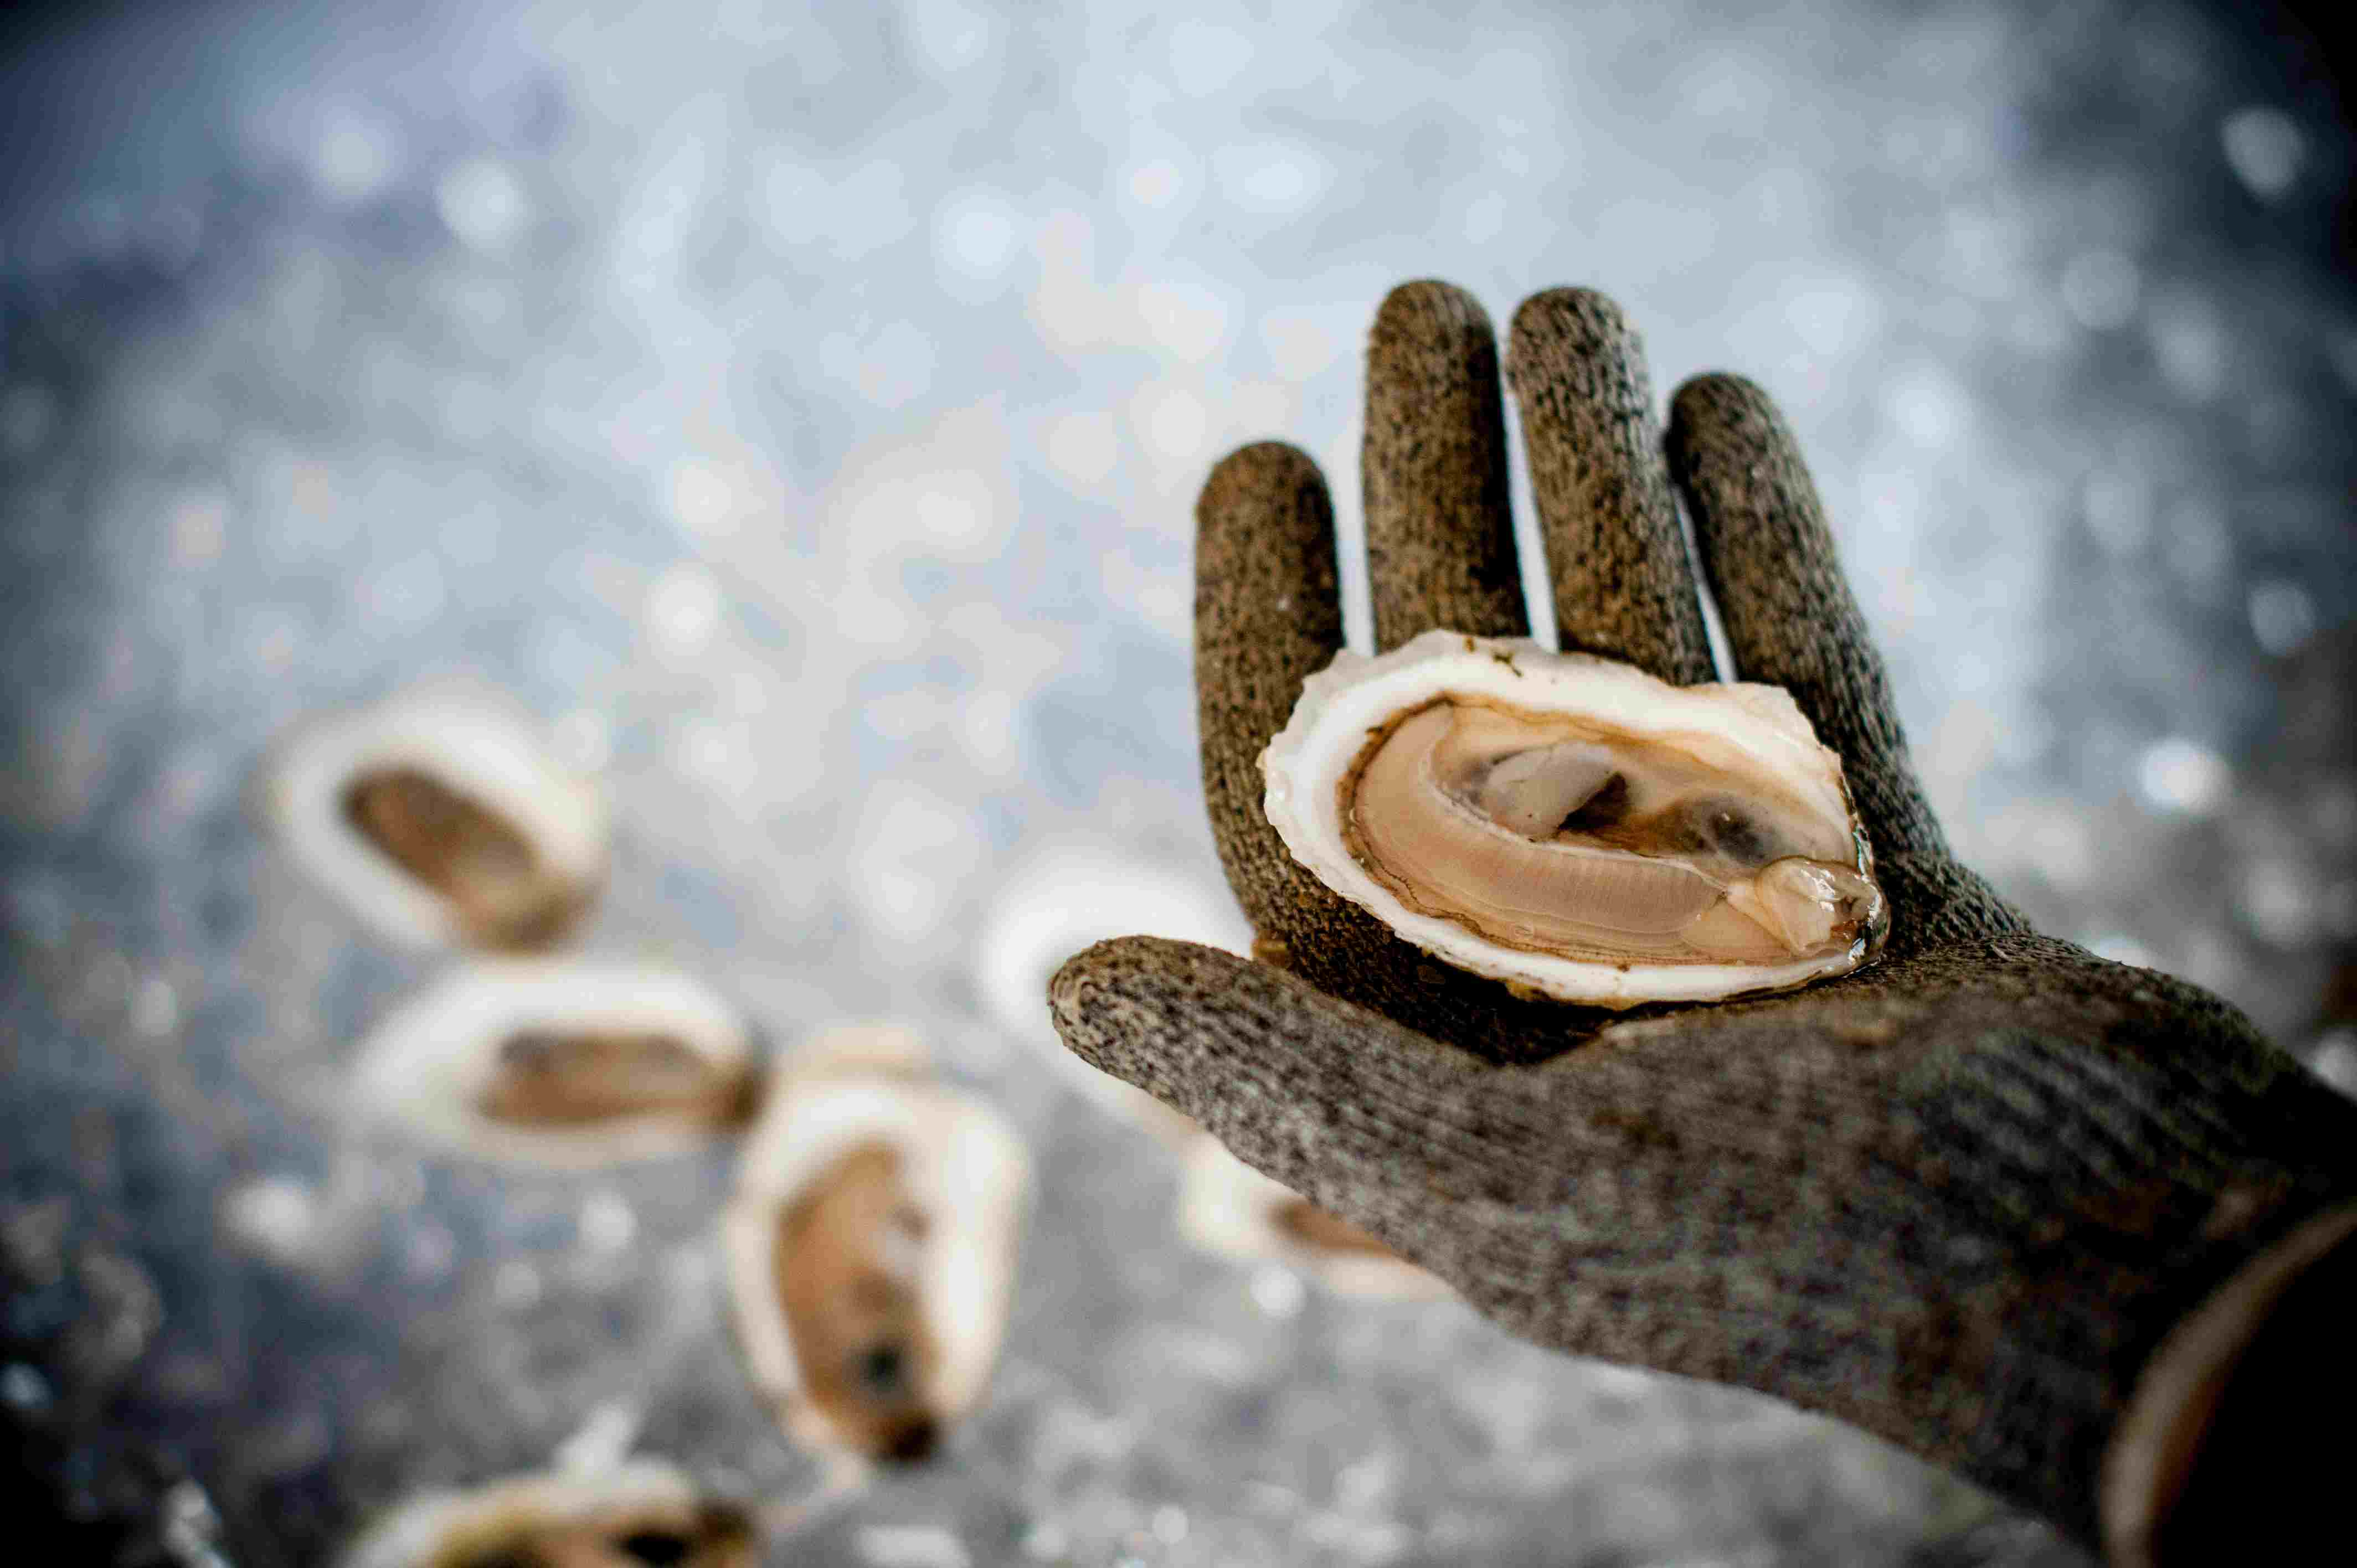 Hand shucking oysters, which are a species vulnerable to ocean acidification